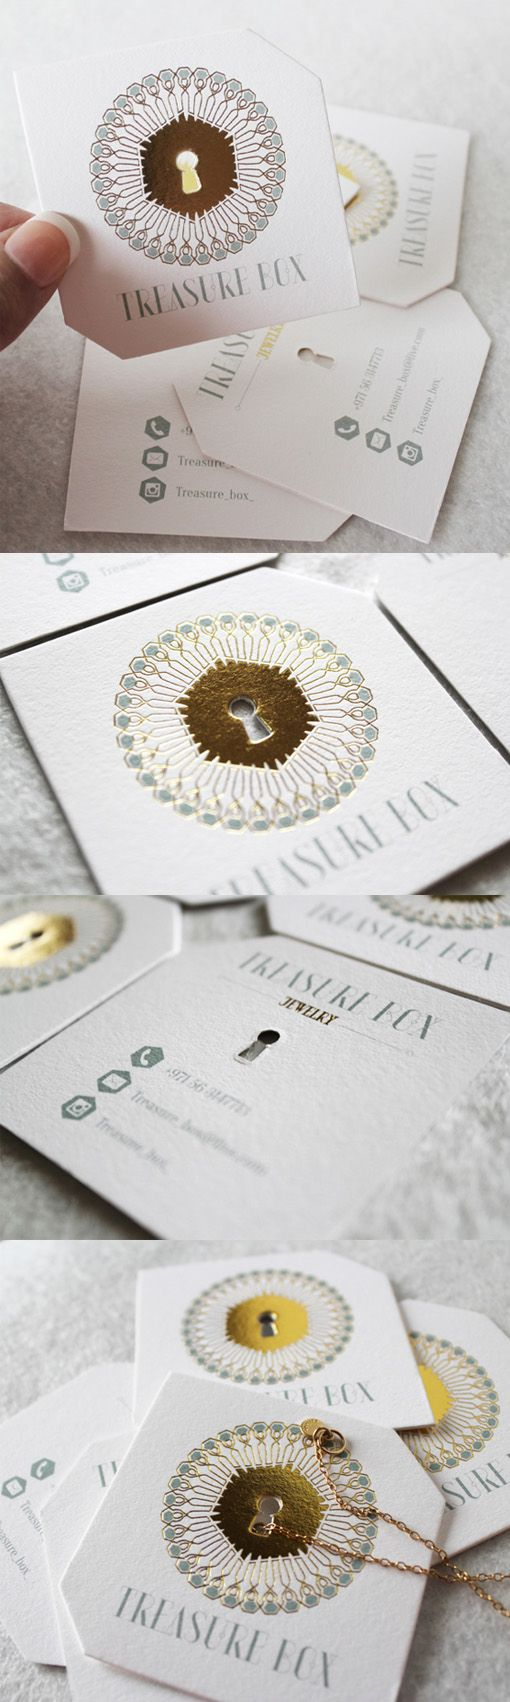 1465 best business card design images on pinterest business elegant die cut and gold foil embossed business card for a jewelry store magicingreecefo Gallery